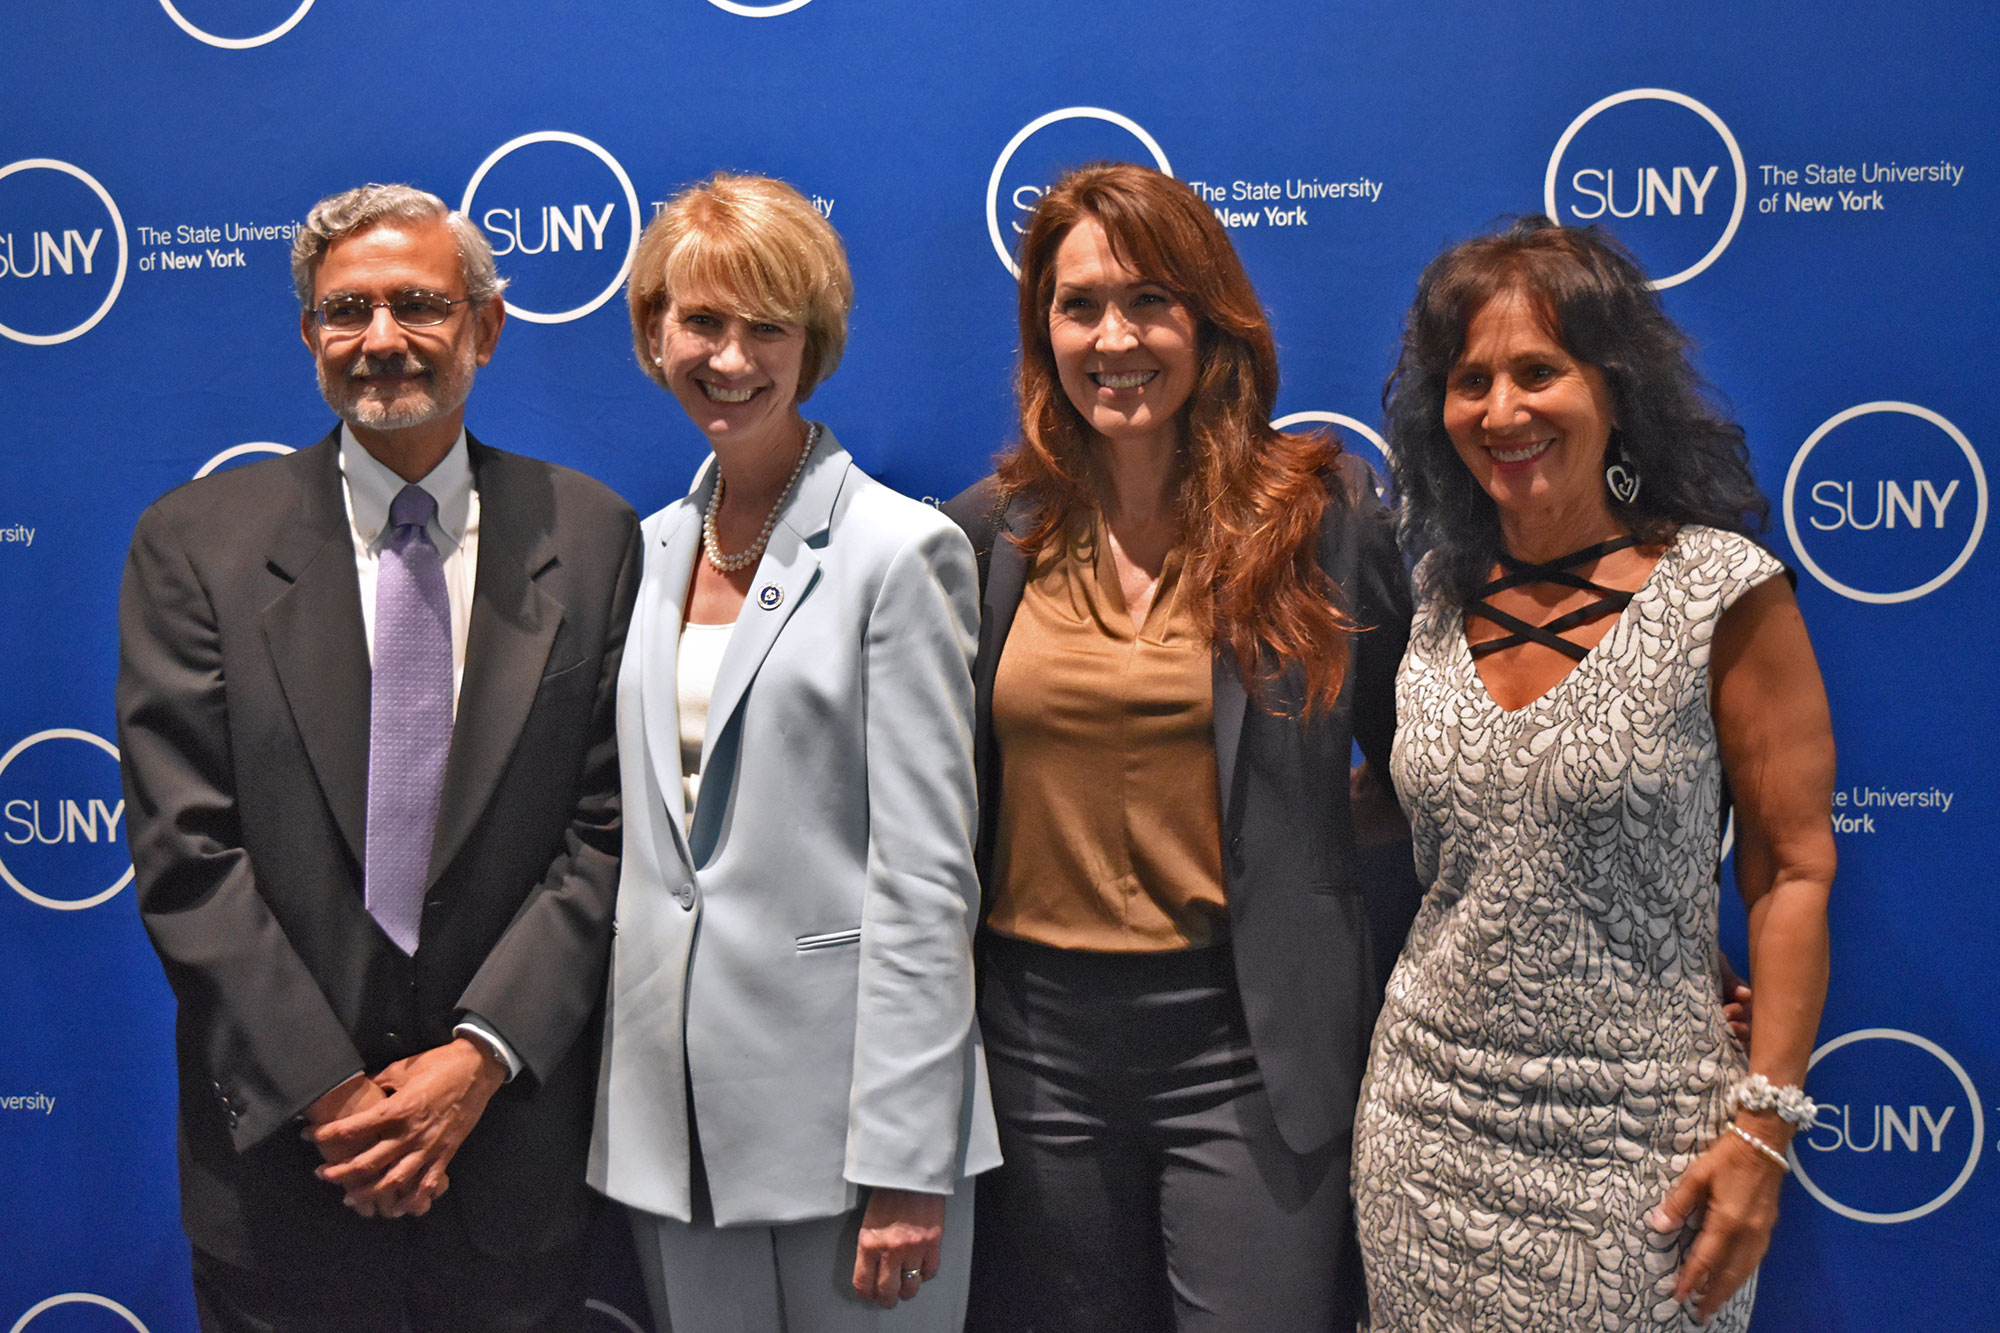 L-R: Dr. Mantosh Dewan of Upstate Medical University, SUNY Chancellor Kristina Johnson, Susan Schneider Williams, and founder of the Lewy Body Resource Center Norma Loeb